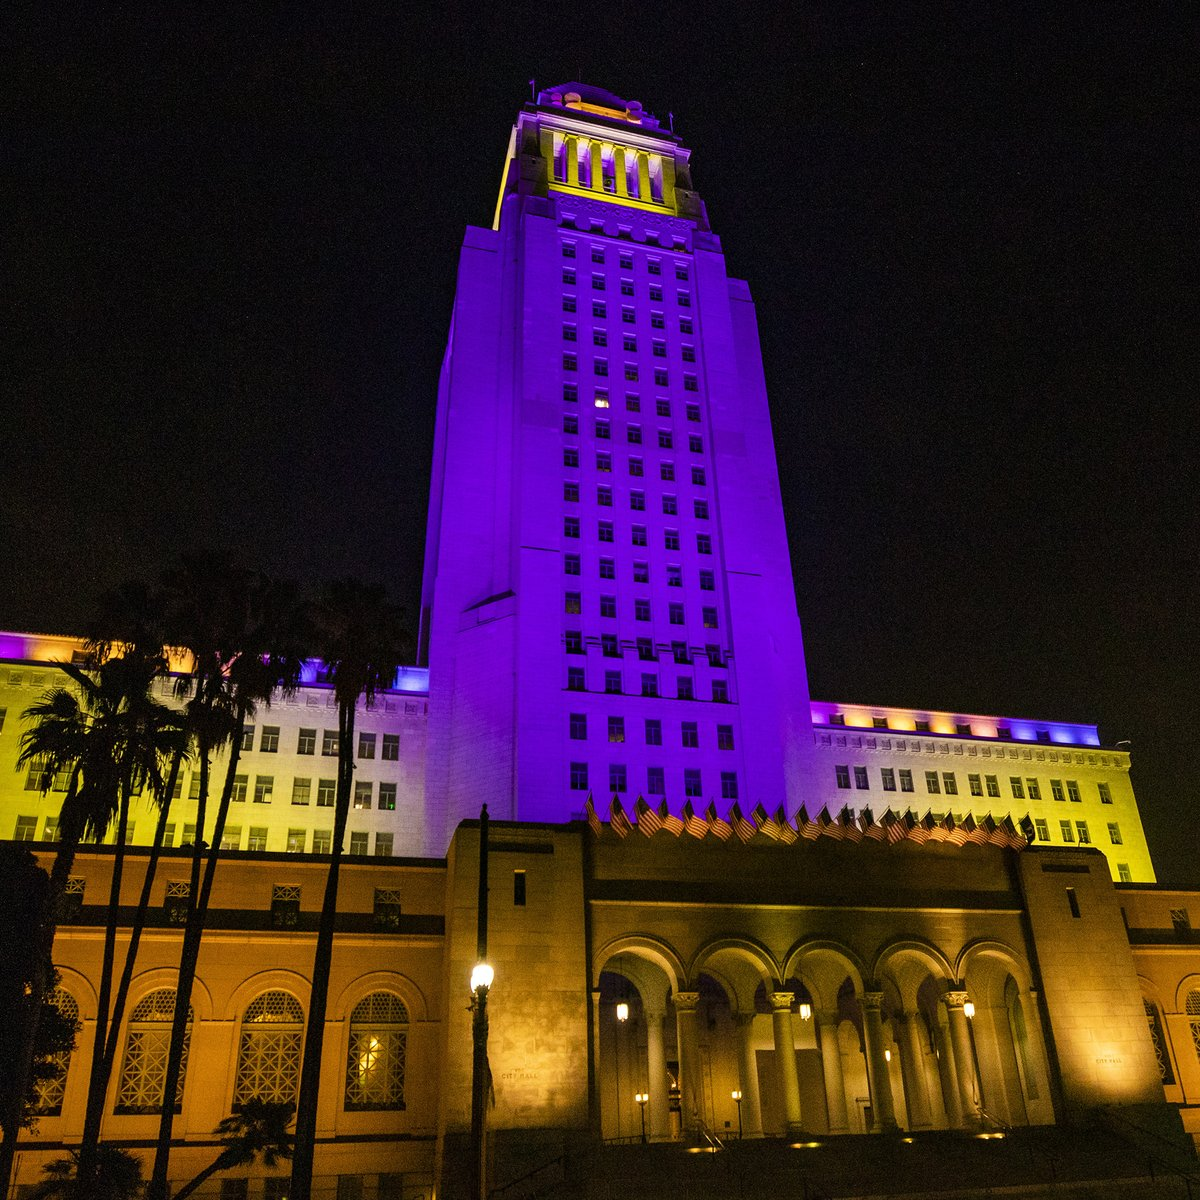 City Hall and the LAX pylons will stay illuminated in purple and gold for the rest of the week. Rest in power.